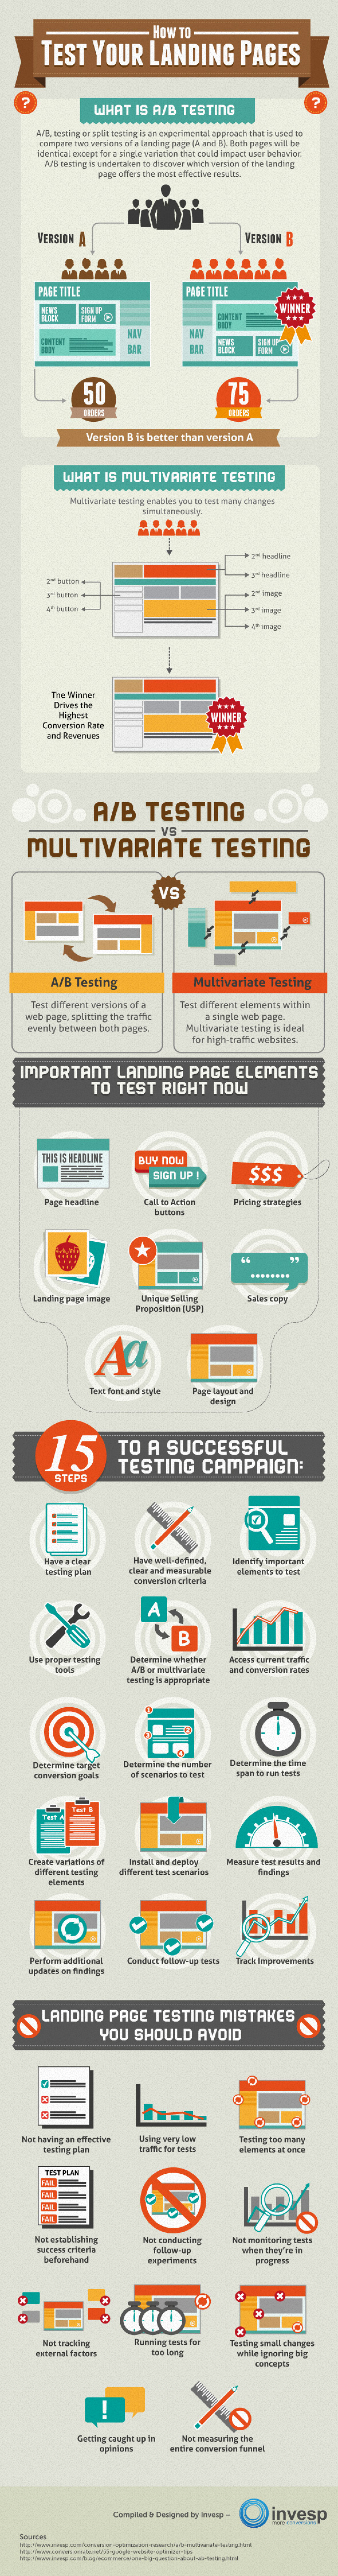 How To Test Your Landing Pages  Infographic